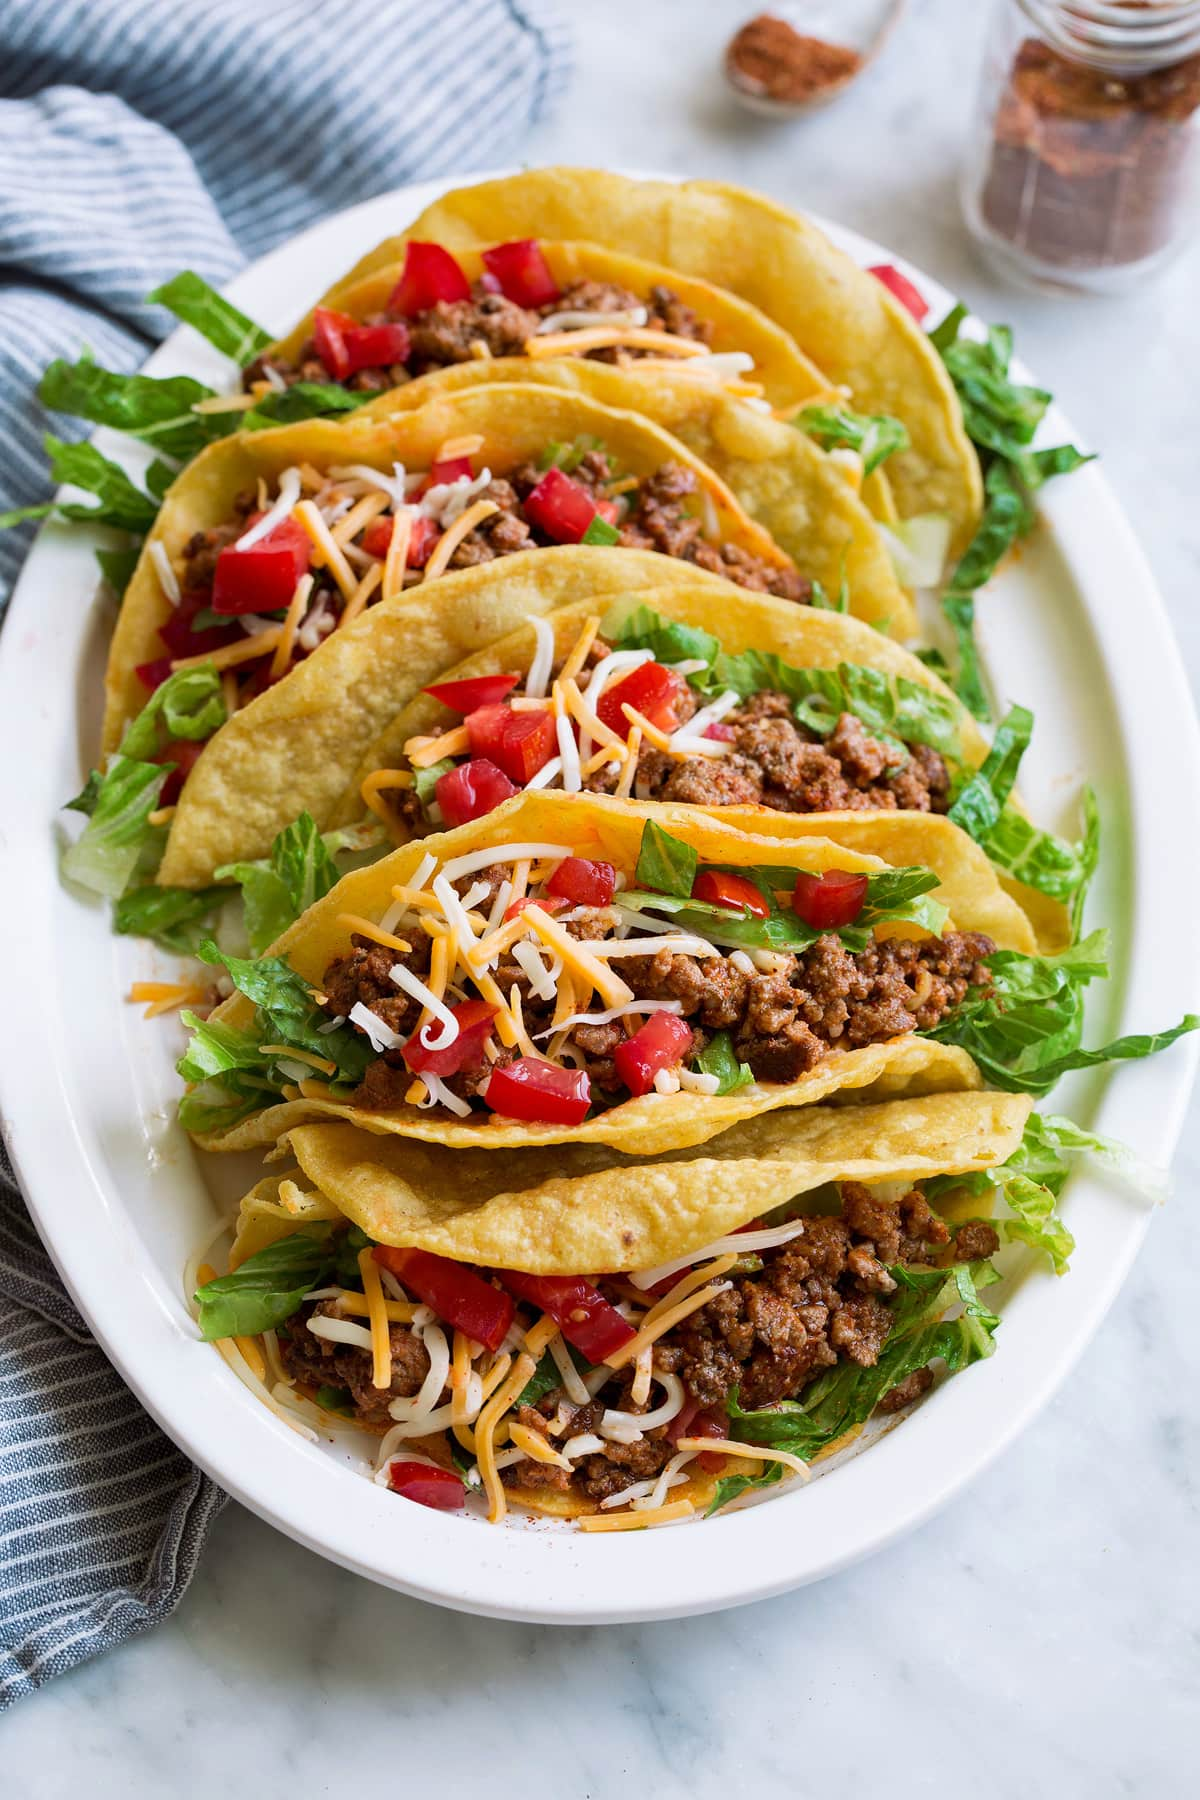 Photo of ground beef tacos on a platter which have been seasoned with a homemade taco seasoning. Showing how to use the DIY taco seasoning.